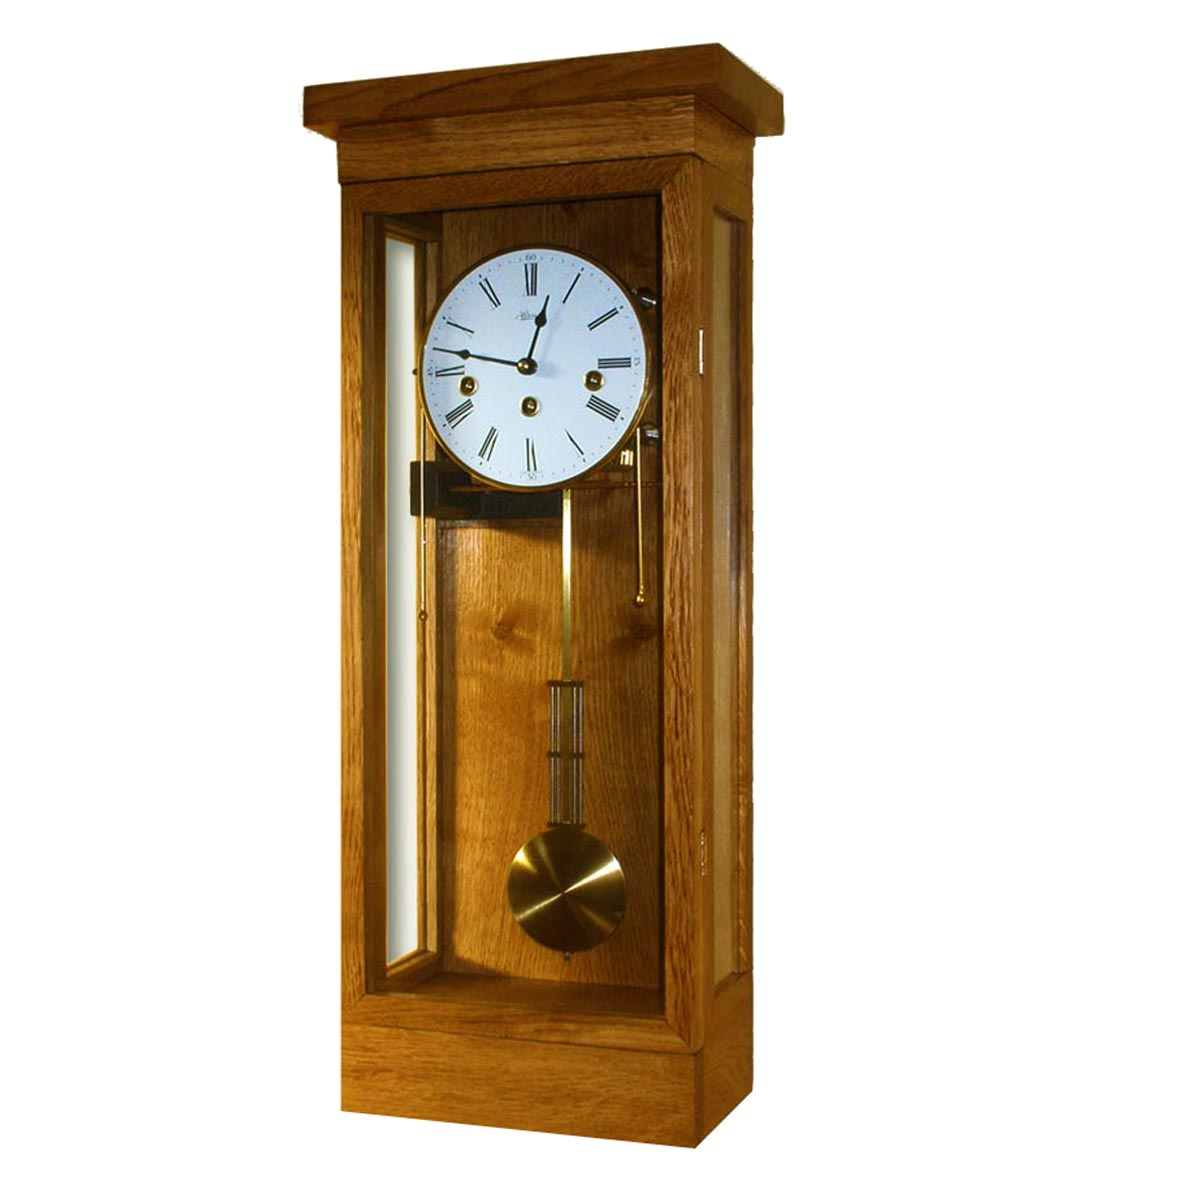 FORDEL Regulator Wall Clock